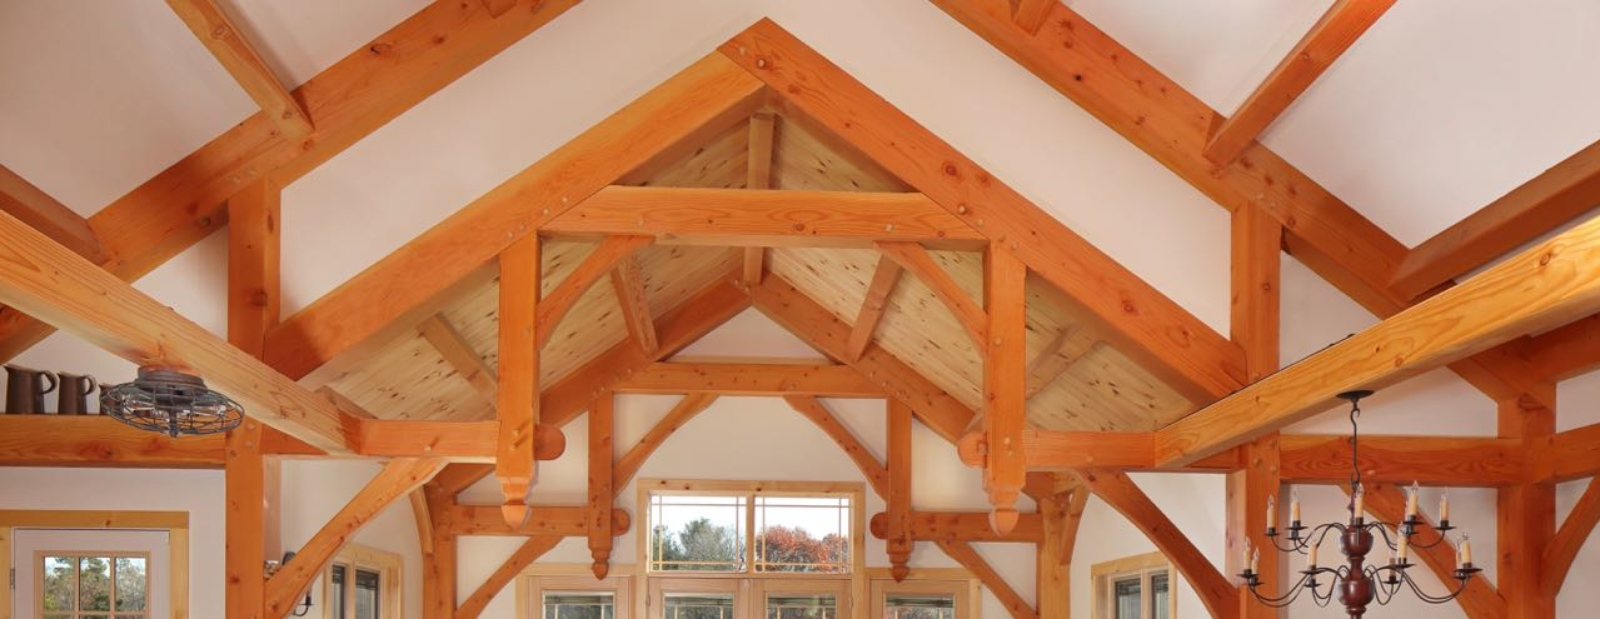 Timber frames with scissor trusses make a dramatic architectural statement.